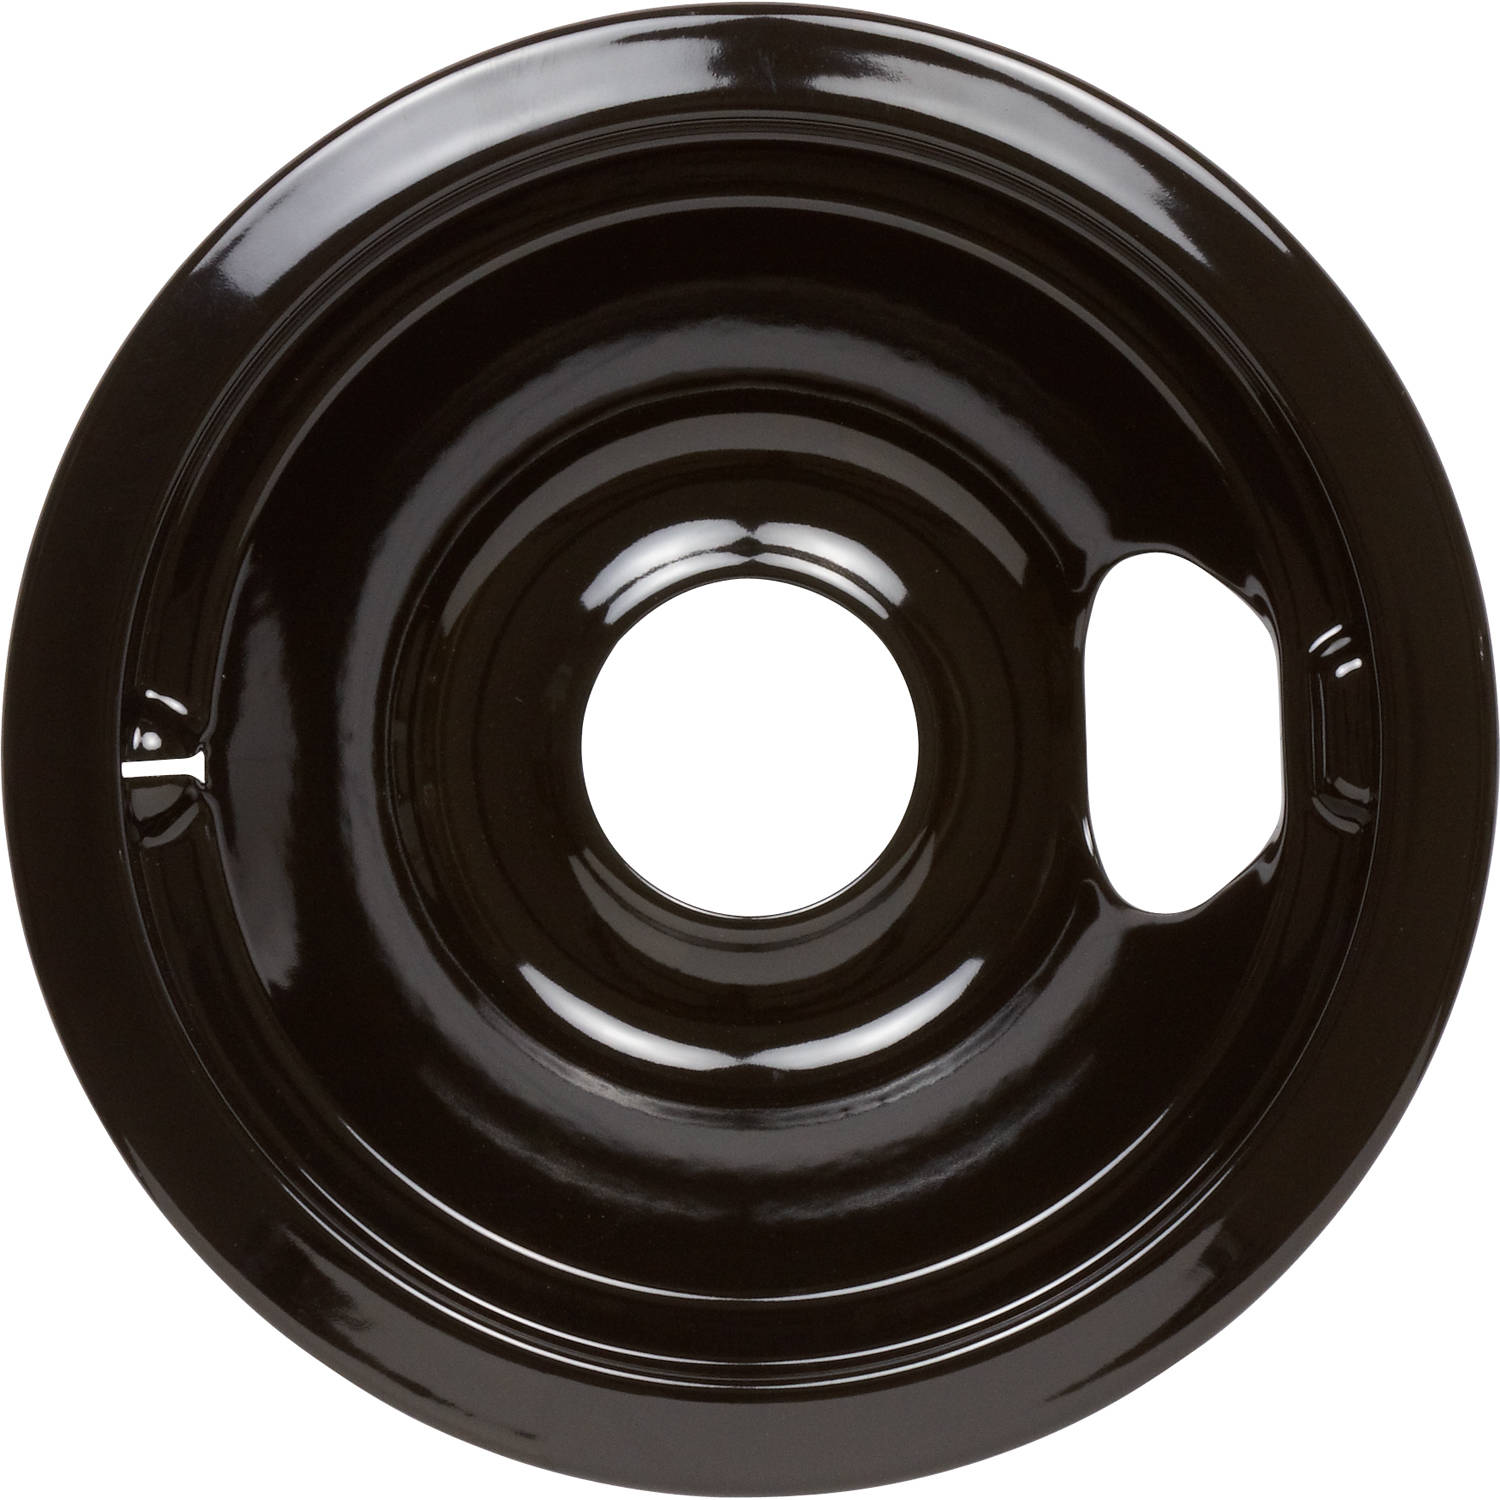 General Electric WB31M20 Drip Pan Bowl